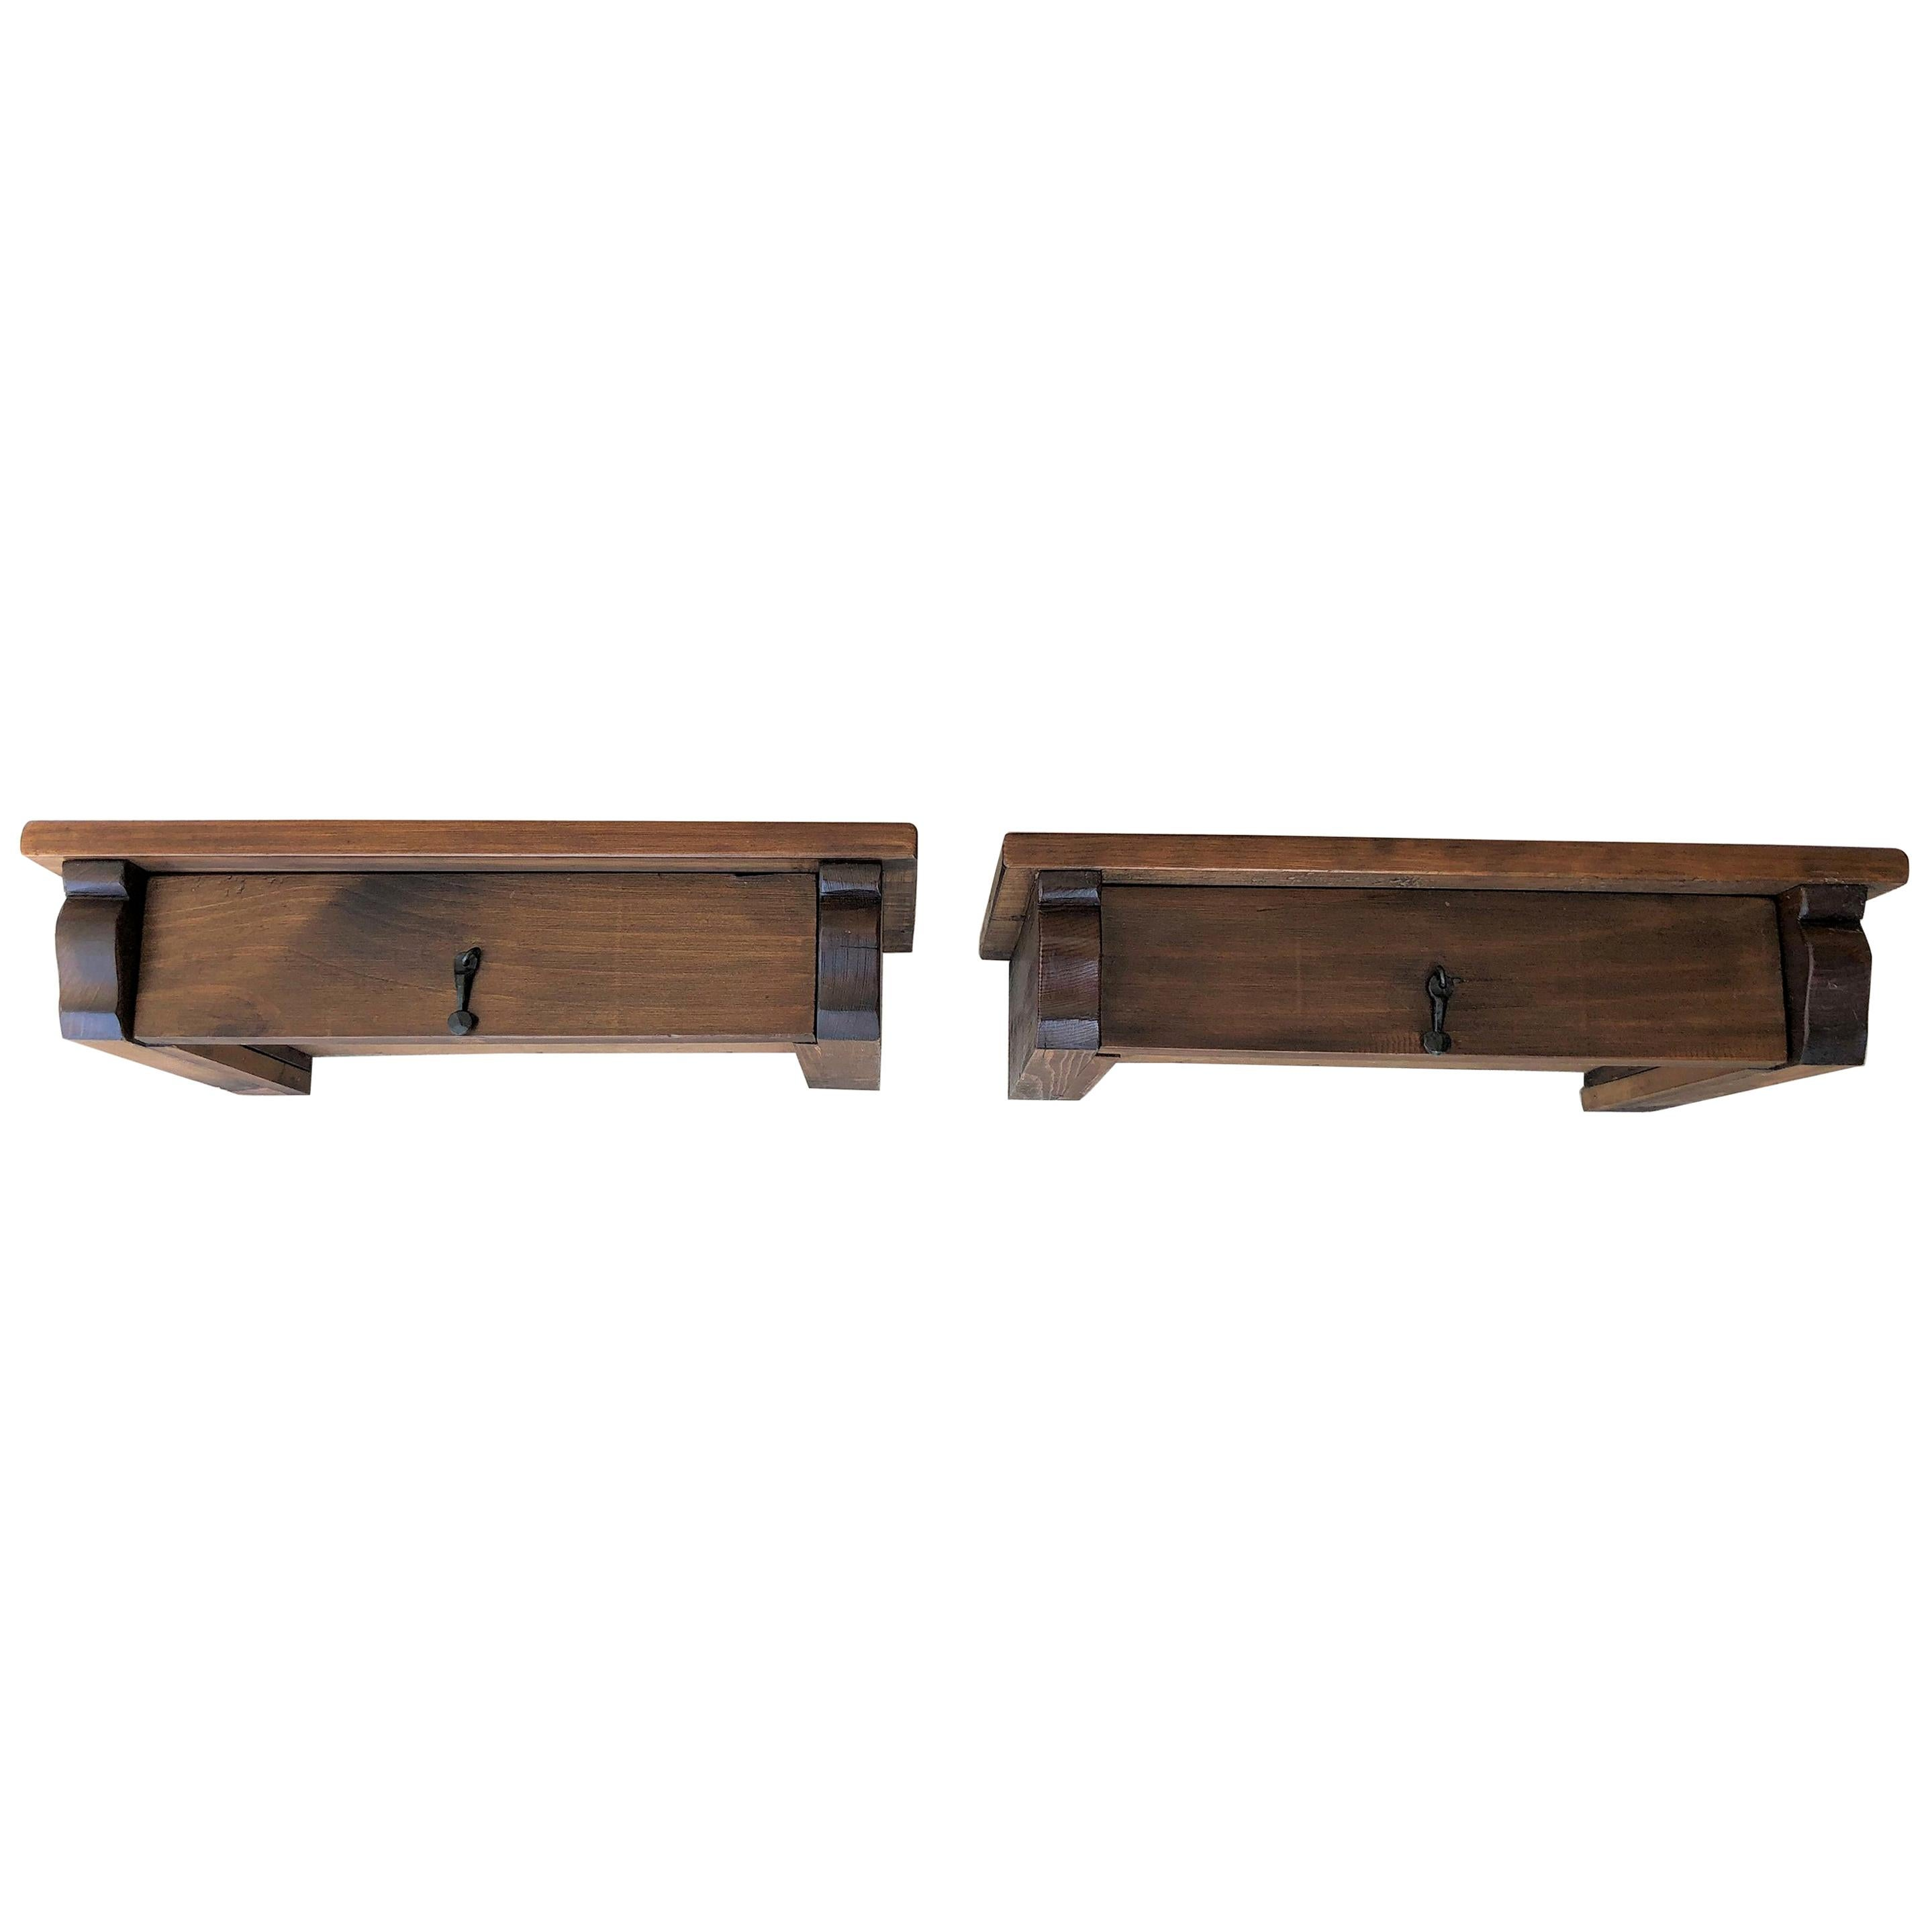 20th Century Pair of Wall Hang Floating Tables with Drawer and Iron Hardware